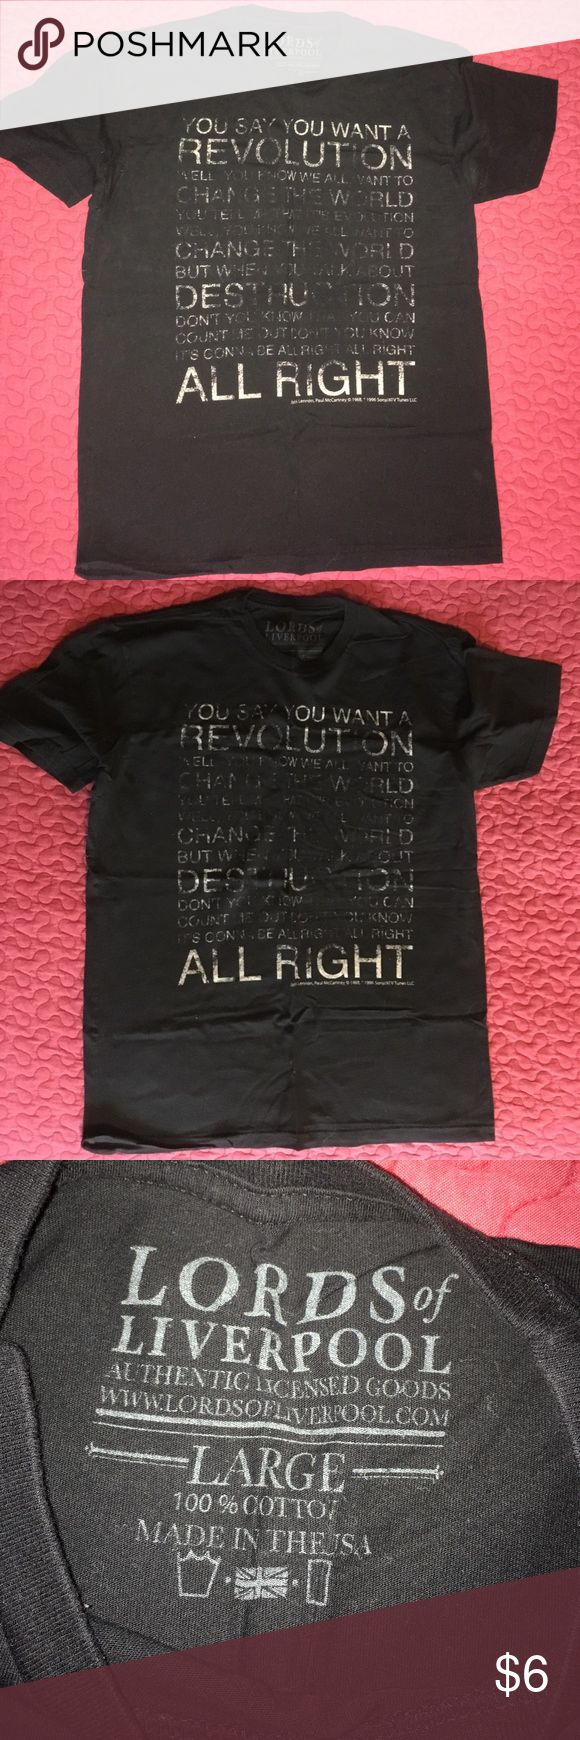 Beatles Revolution lyrics tee size L Make your statement with this Beatles Revolution lyrics tee size L. 100% cotton made in USA by Lords of Liverpool. Great condition, no signs of wear. Lords of Liverpool Shirts Tees - Short Sleeve